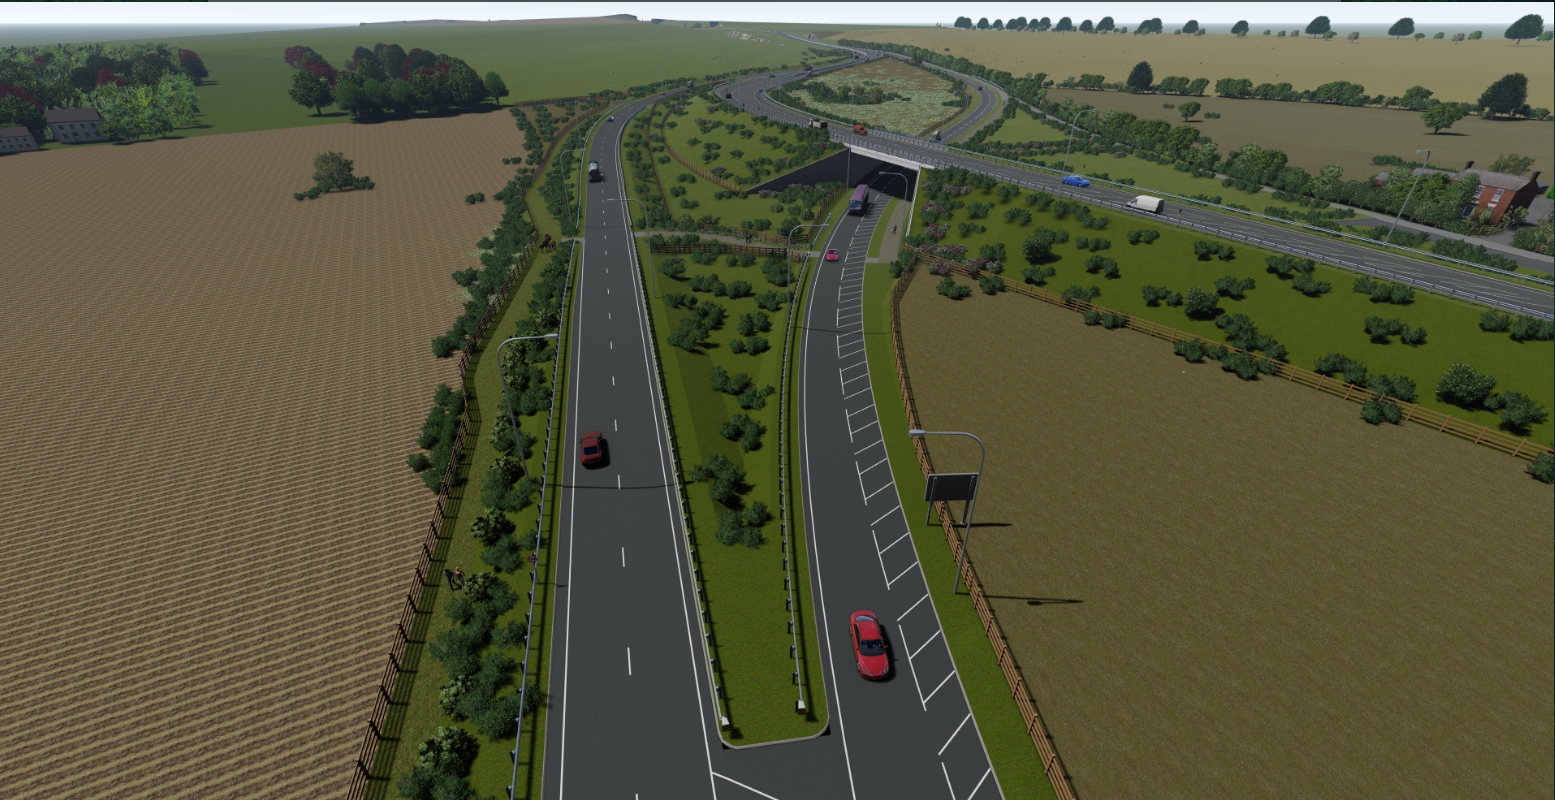 View of the new A164 bridge passing over the A1079 looking south towards the A164-A1079 merge